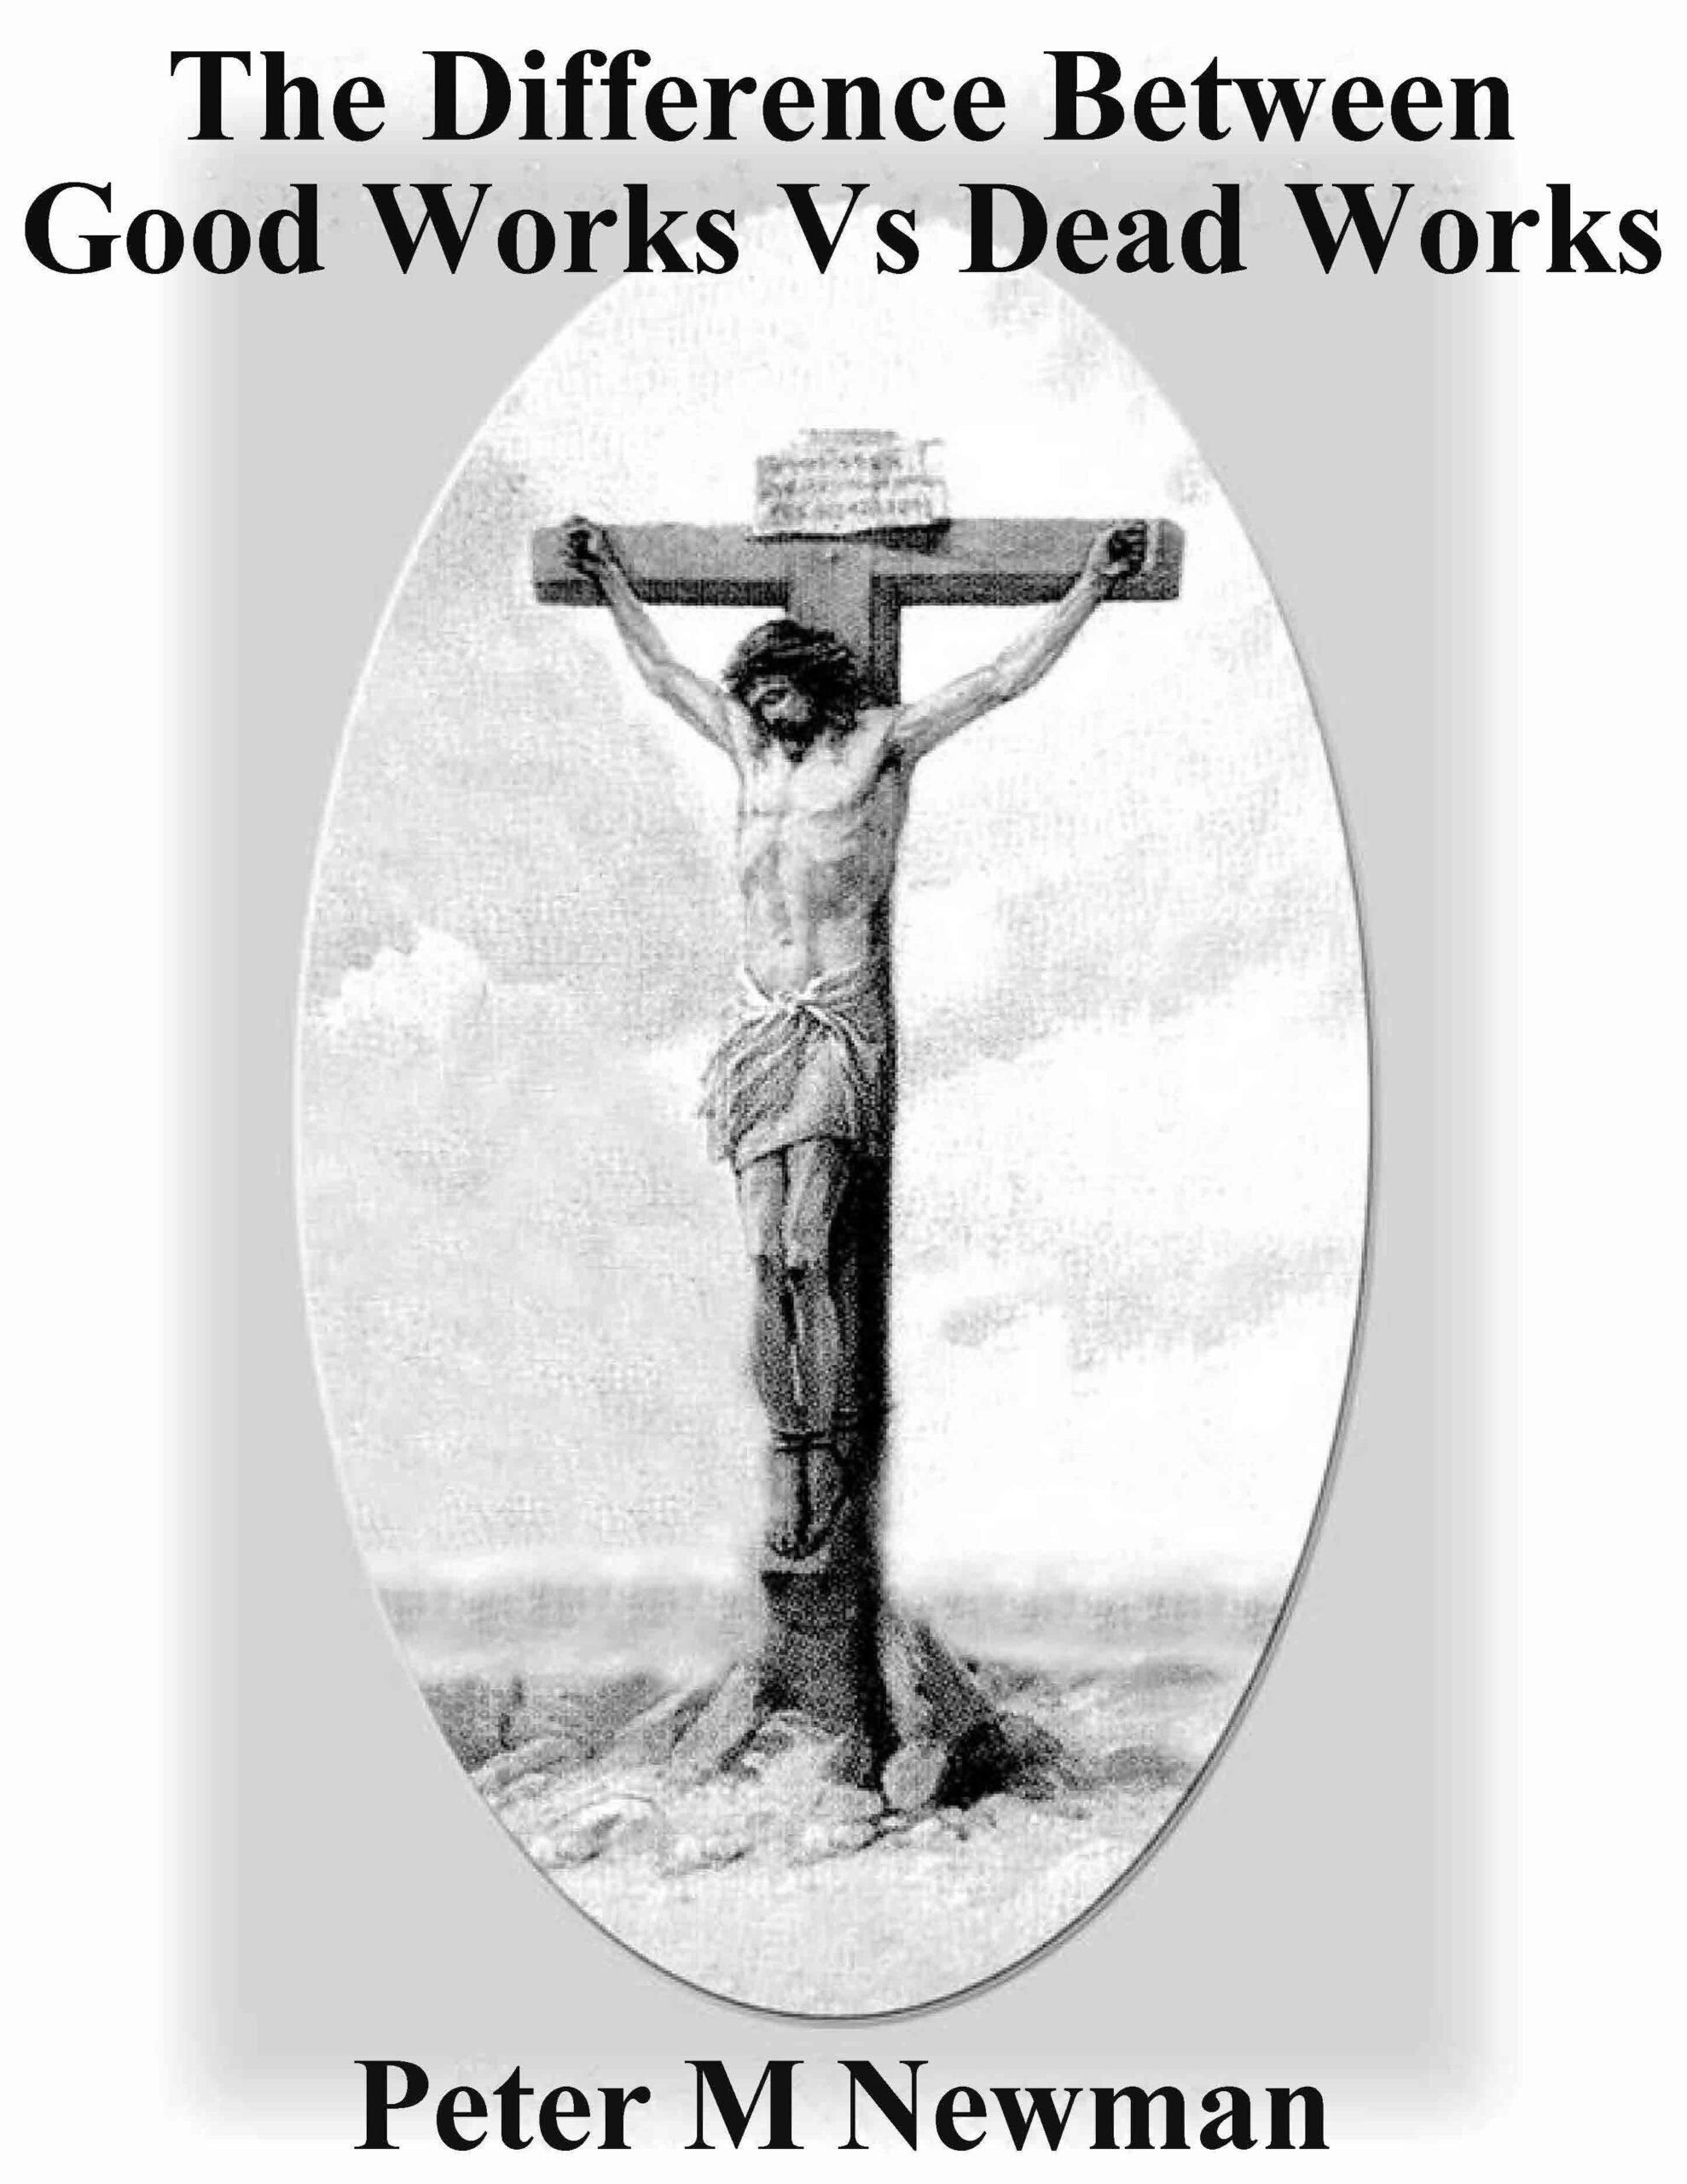 The Difference Between Good Works and Dead Works